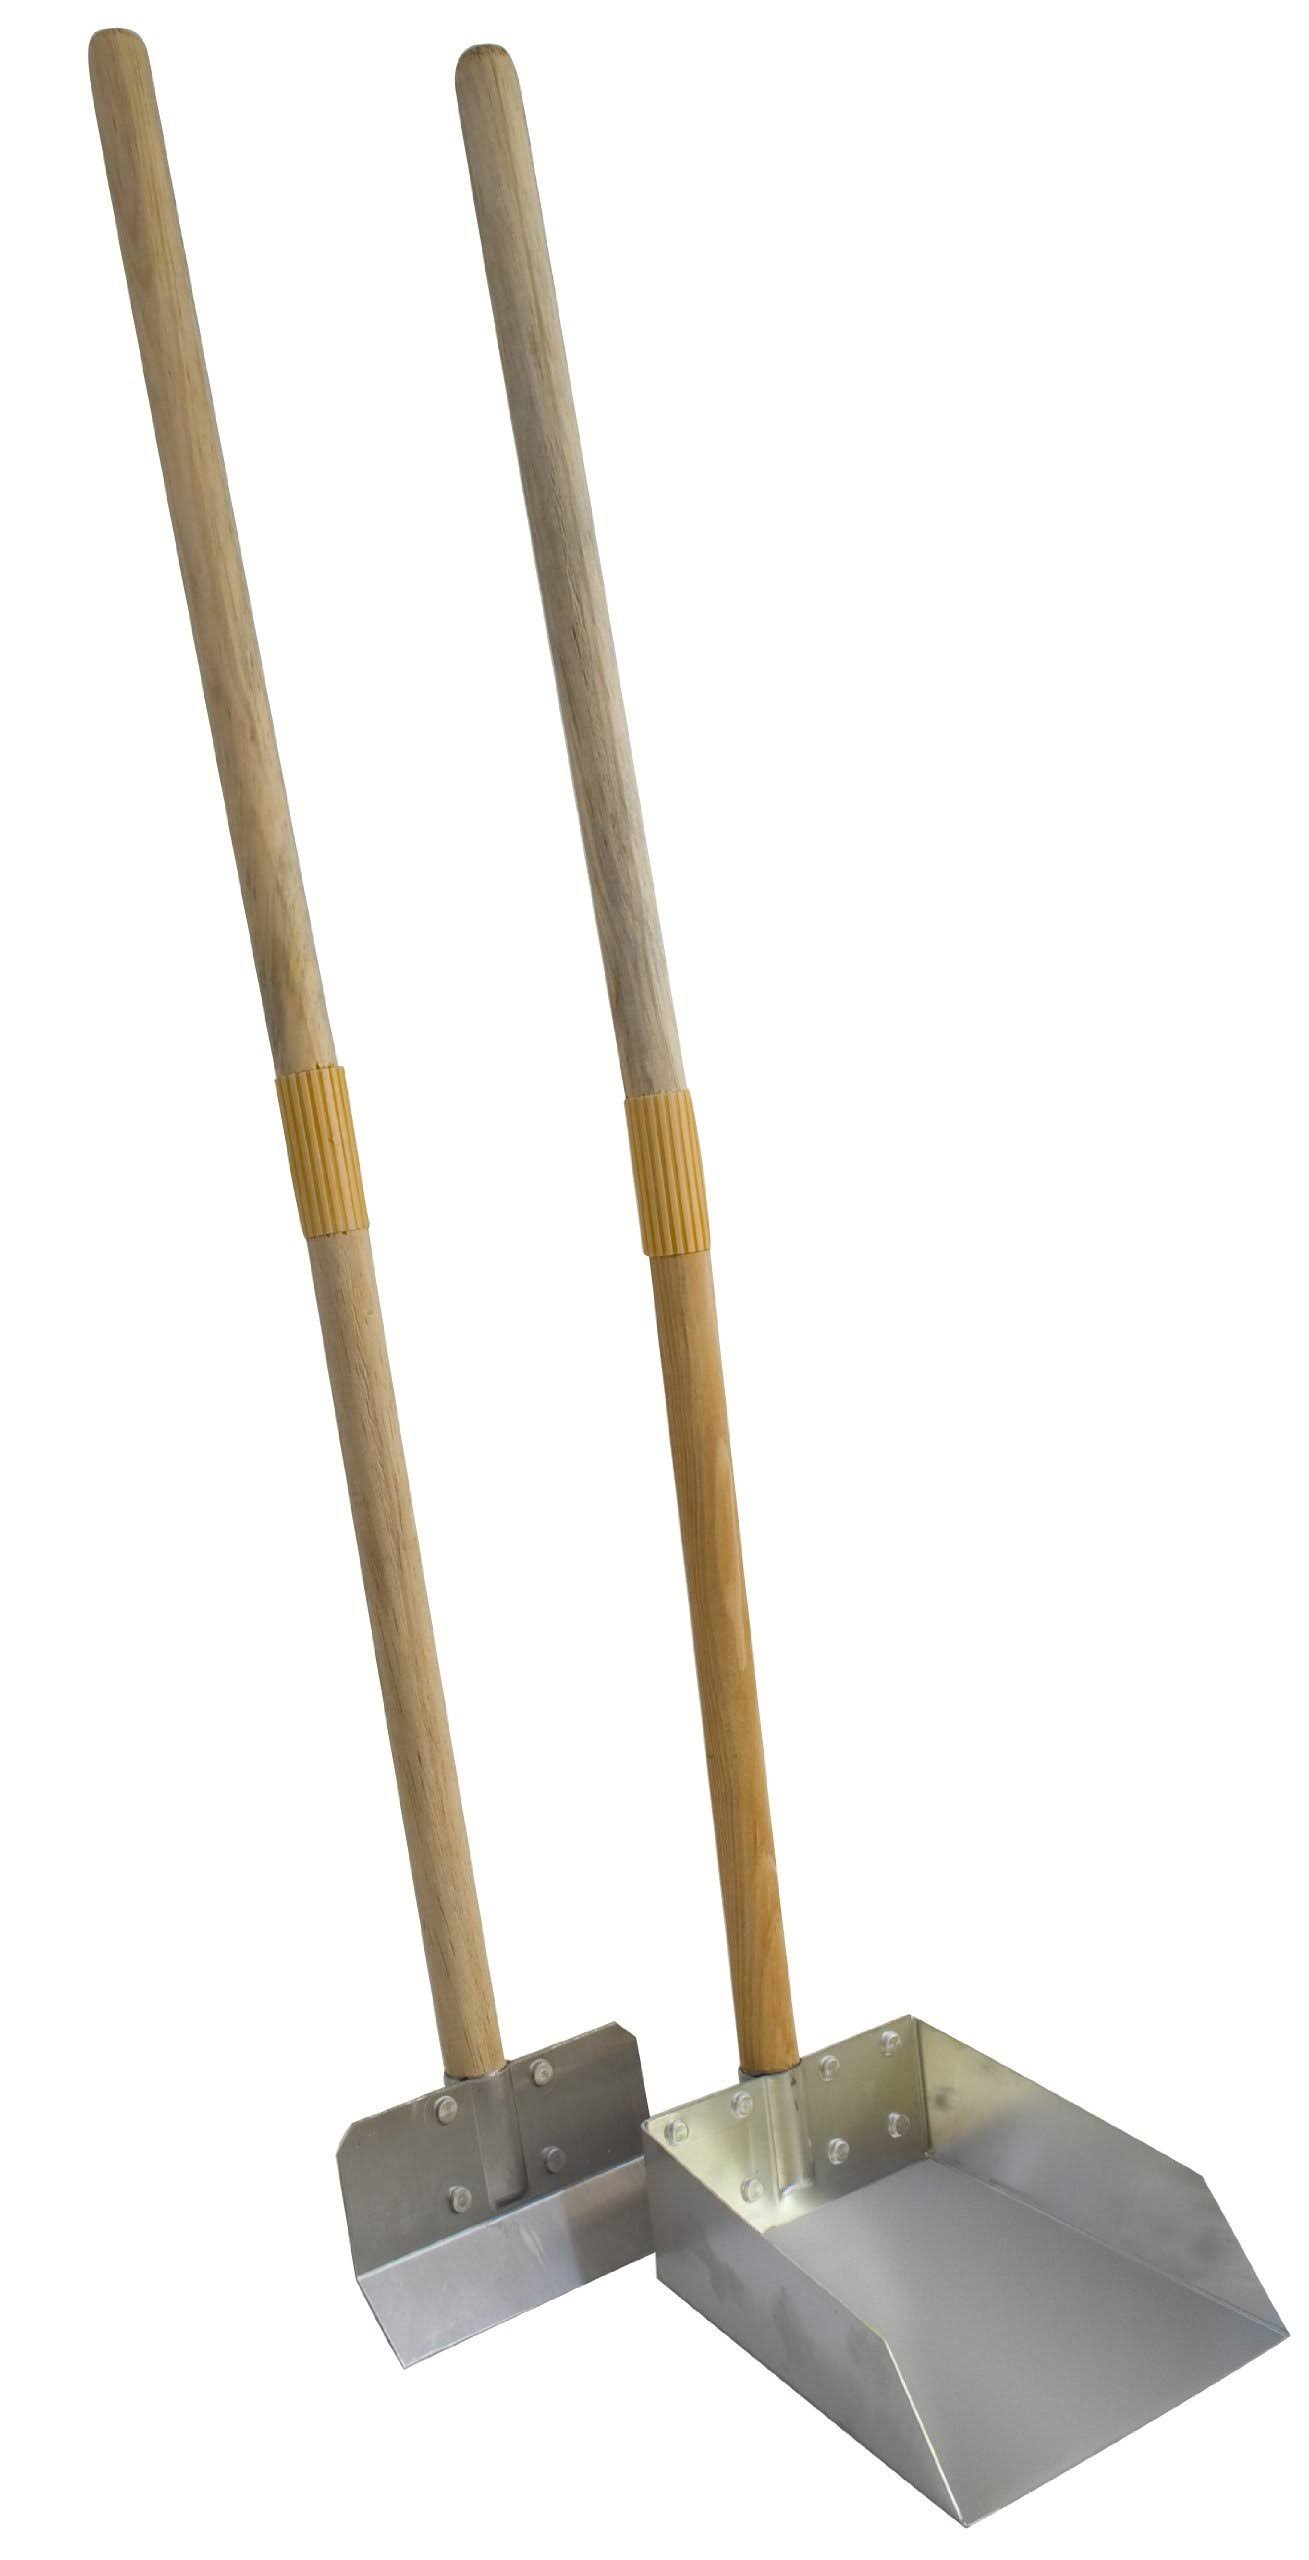 Flexrake Scoop and Spade Set